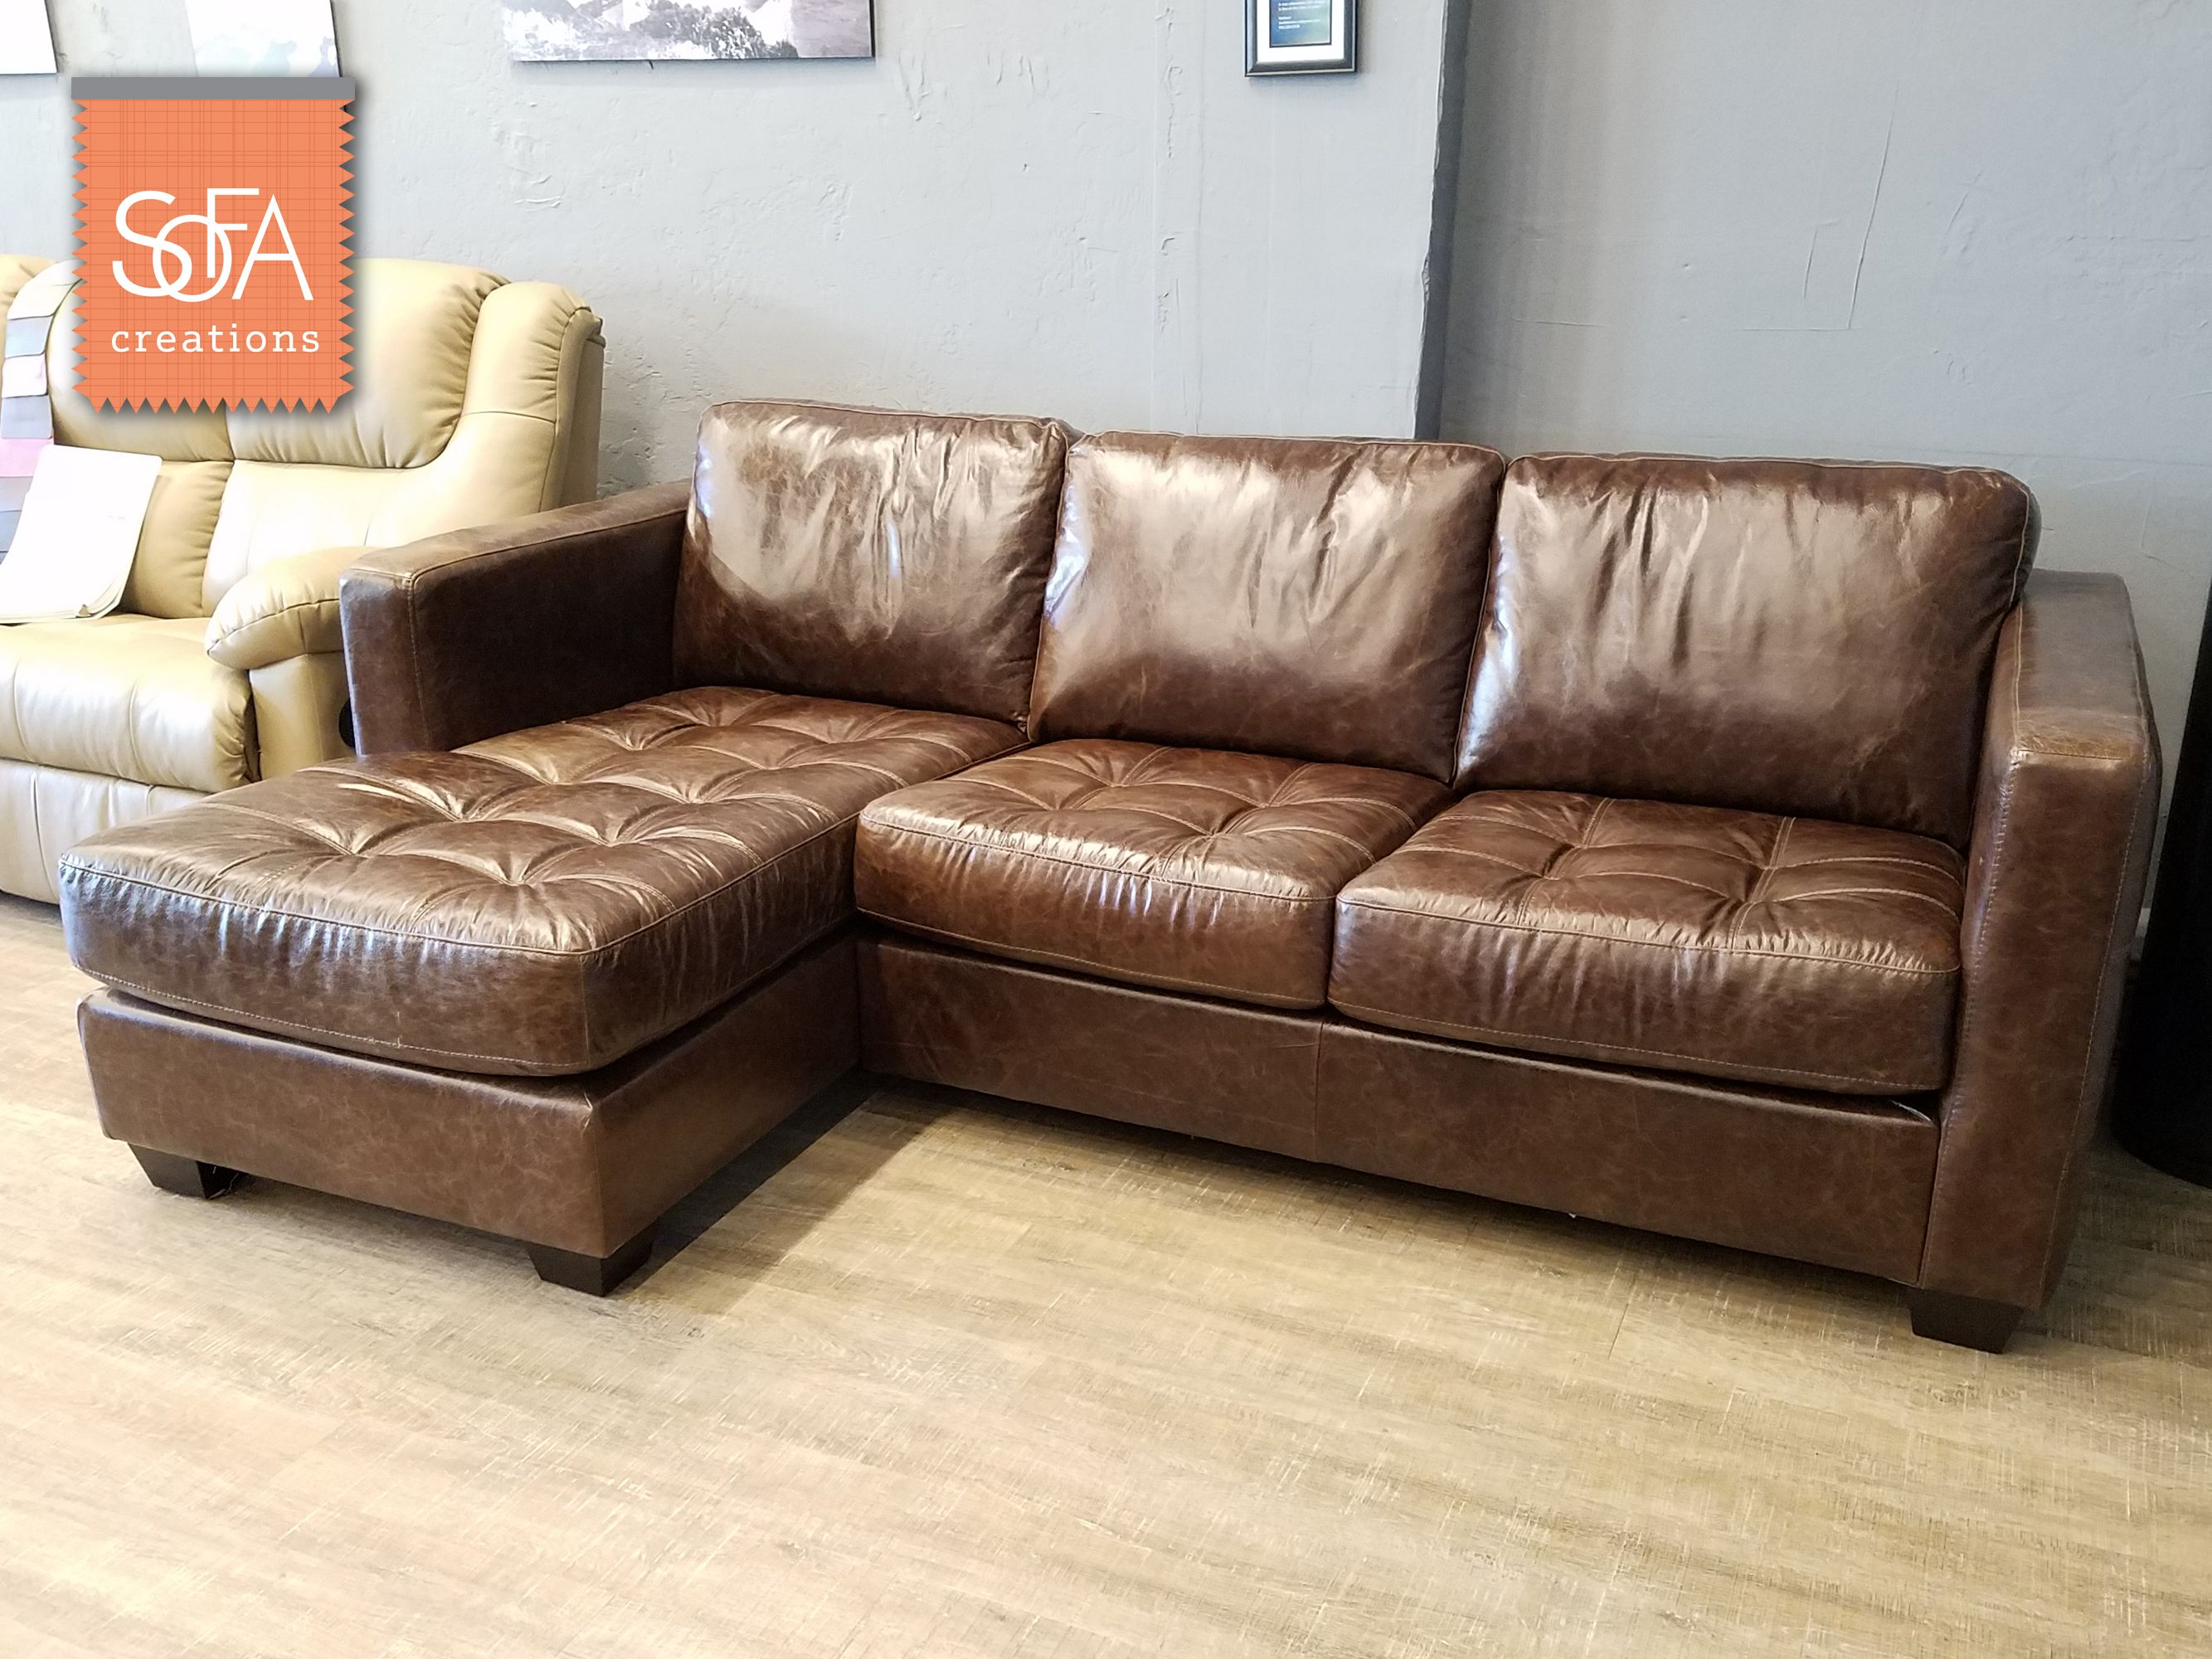 Barrett Top Grain Leather Sectional Featuring A Stylish Tufting